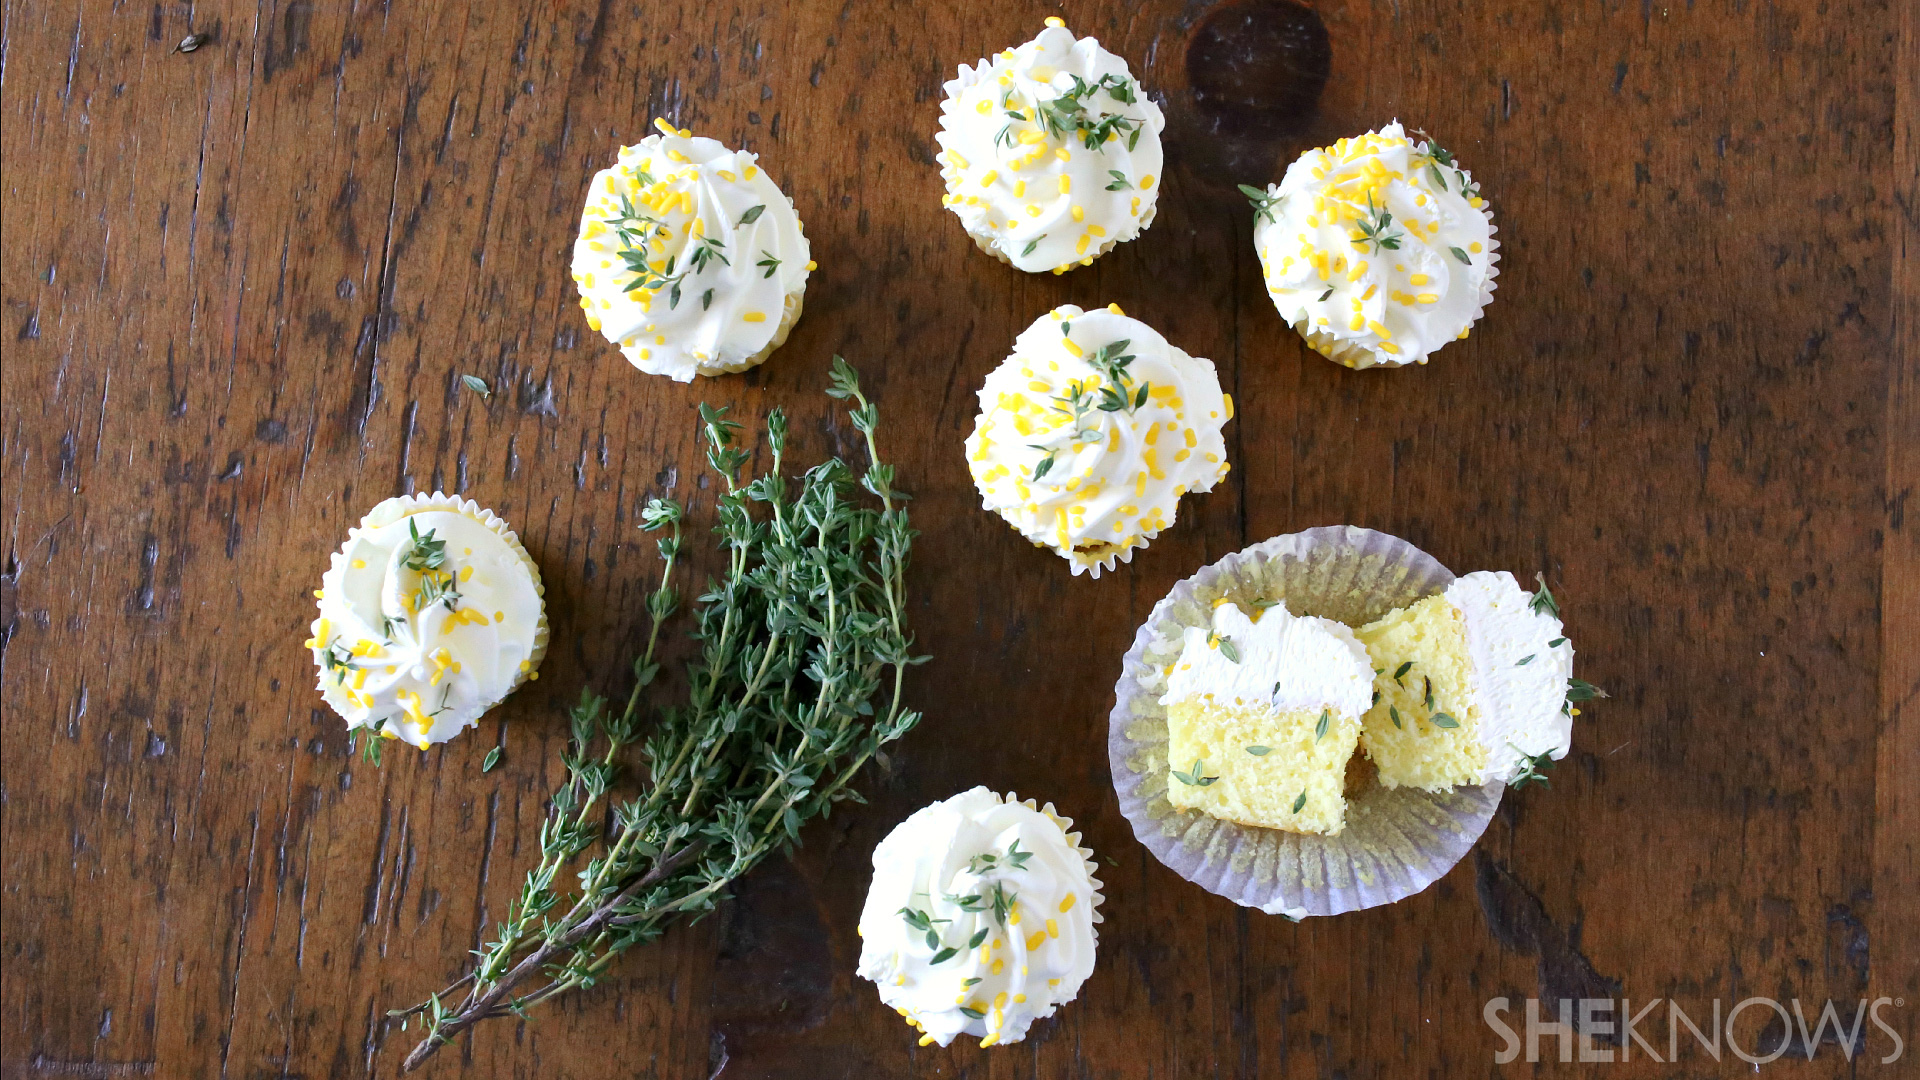 Lemon thyme olive oil cupcakes with lemon thyme buttercream